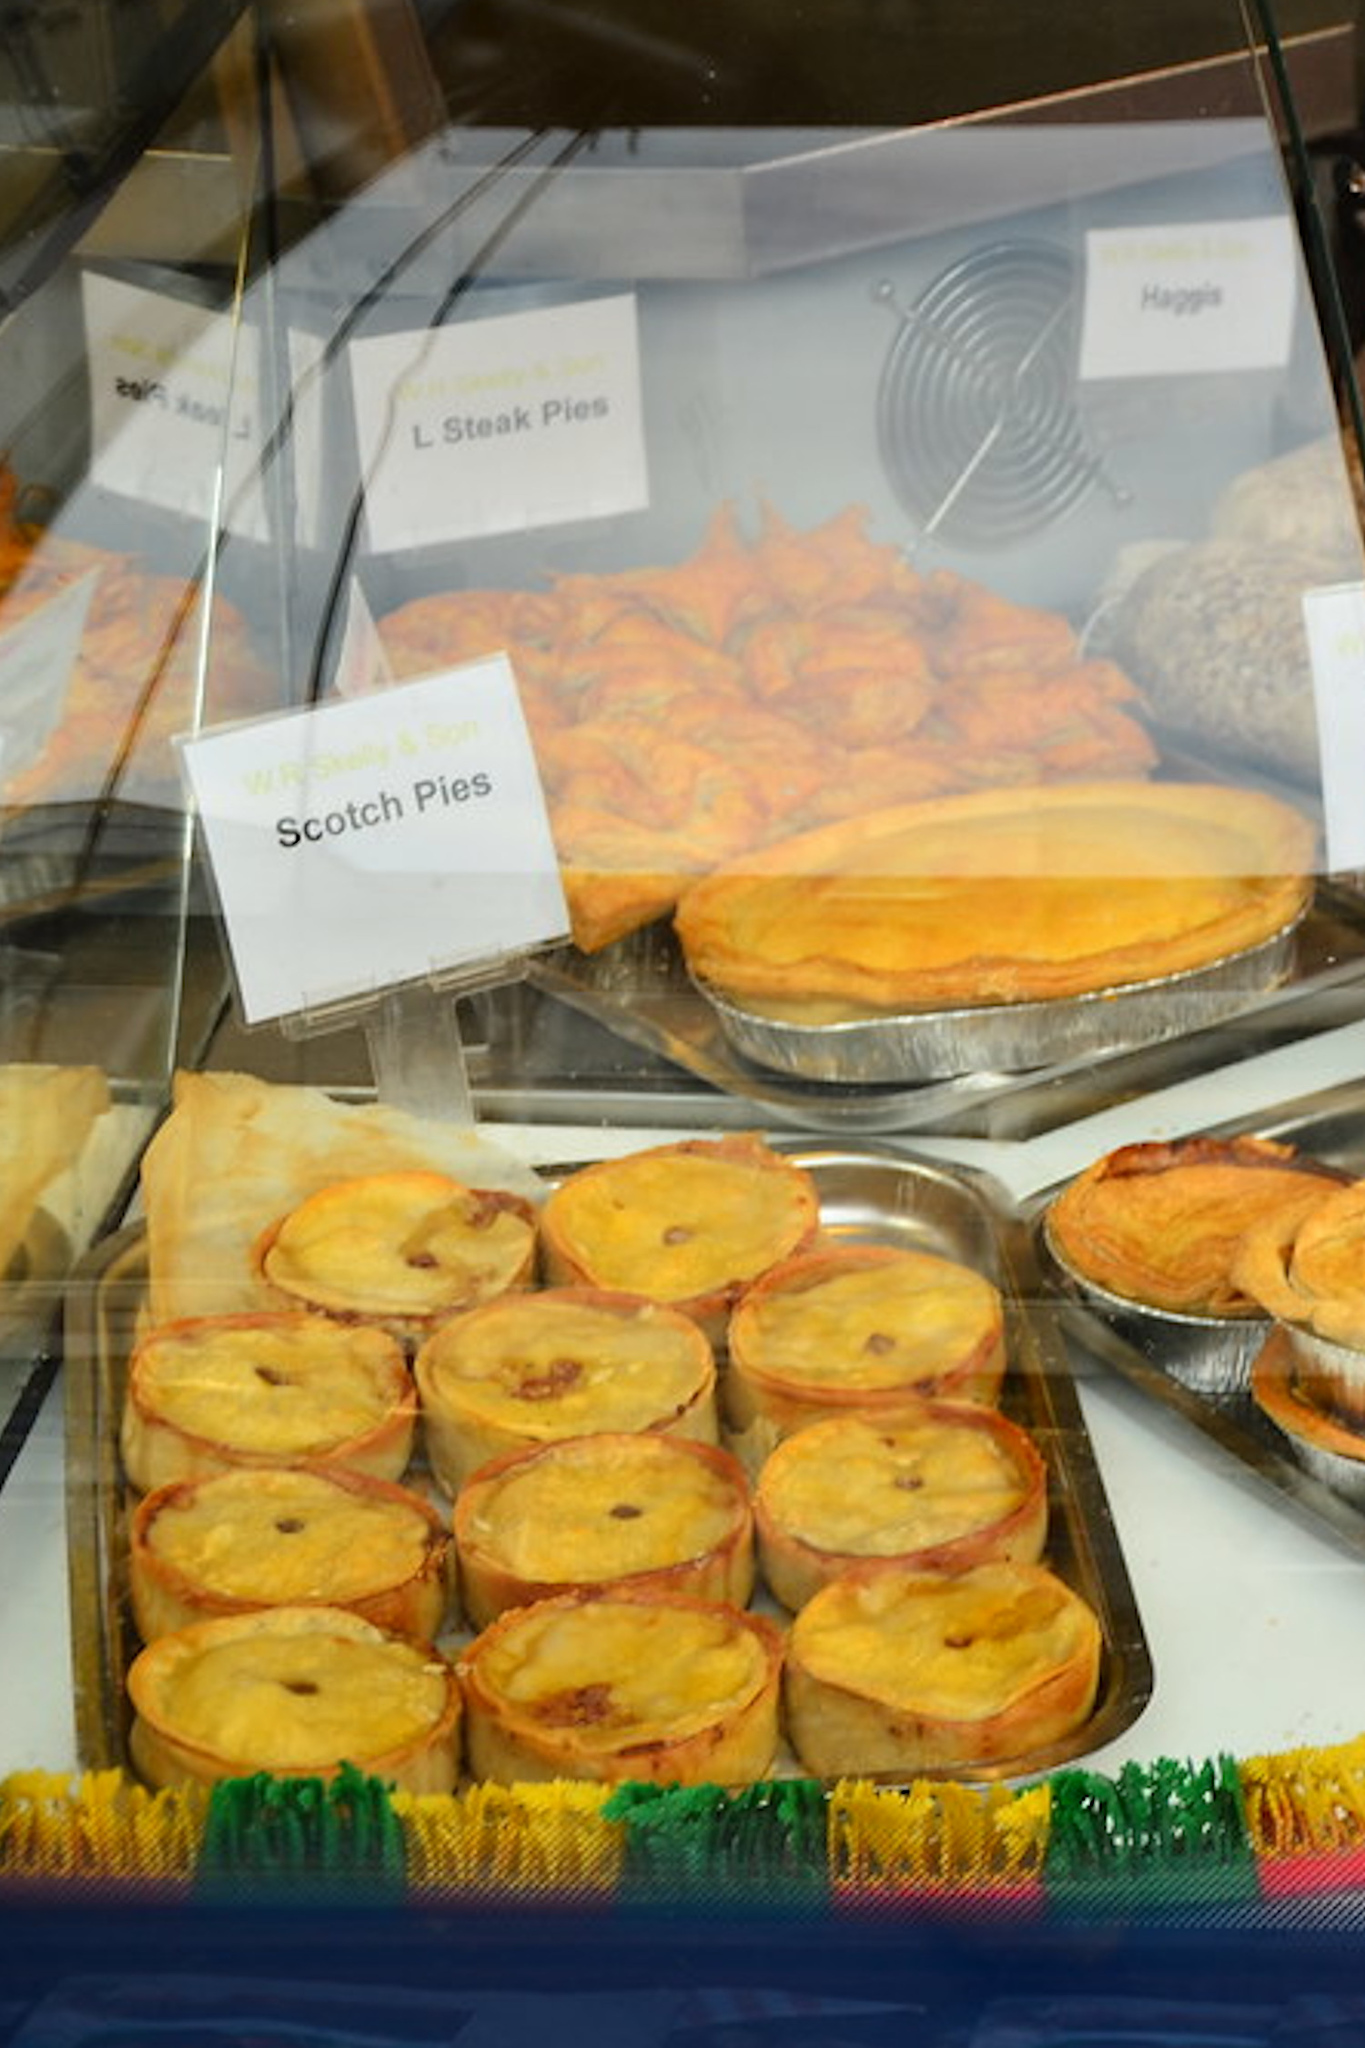 Scottish pies in a store featuring Scottish foods.